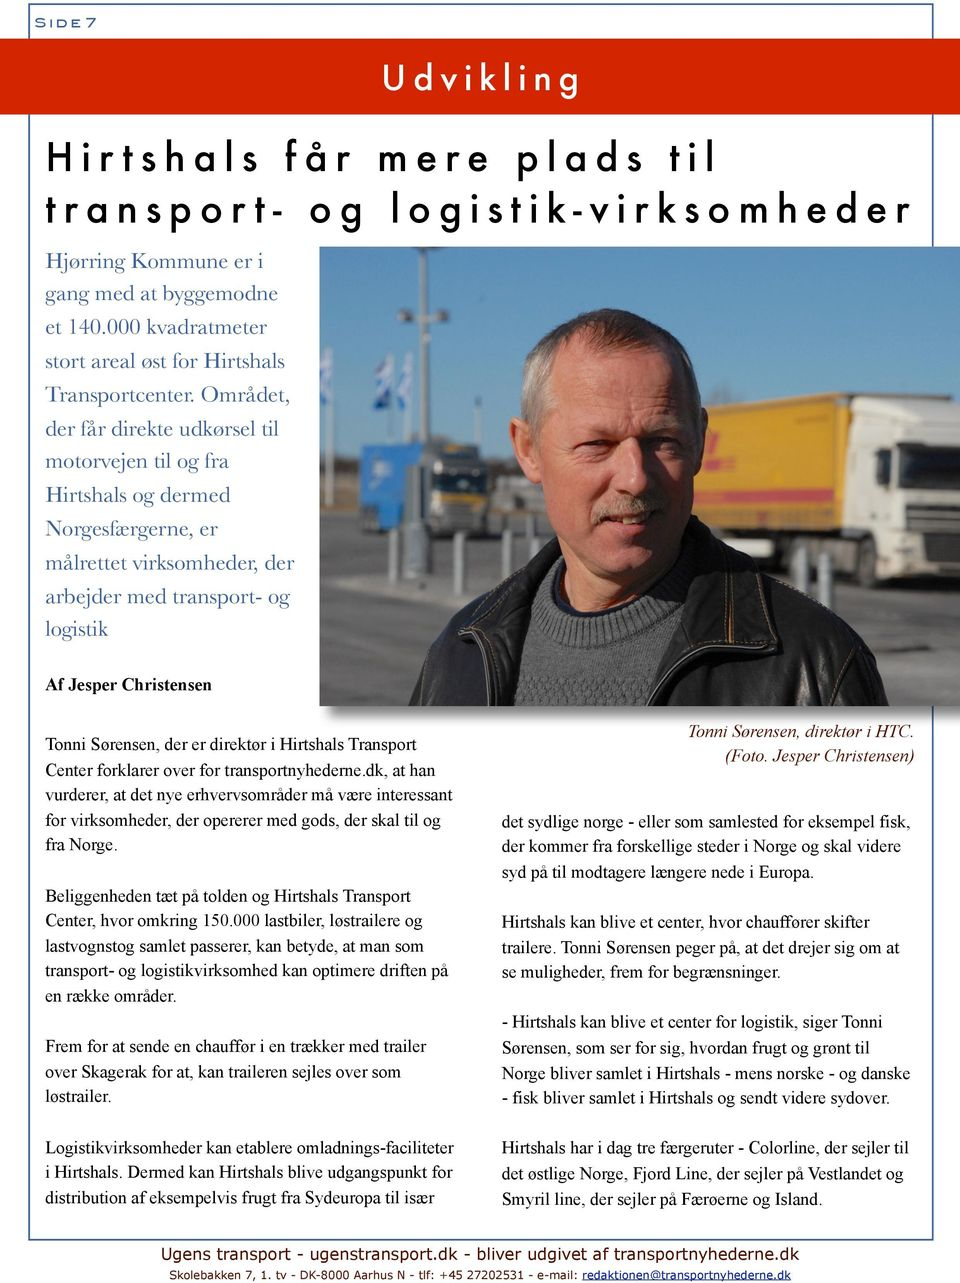 Sørensen, der er direktør i Hirtshals Transport Center forklarer over for transportnyhederne.